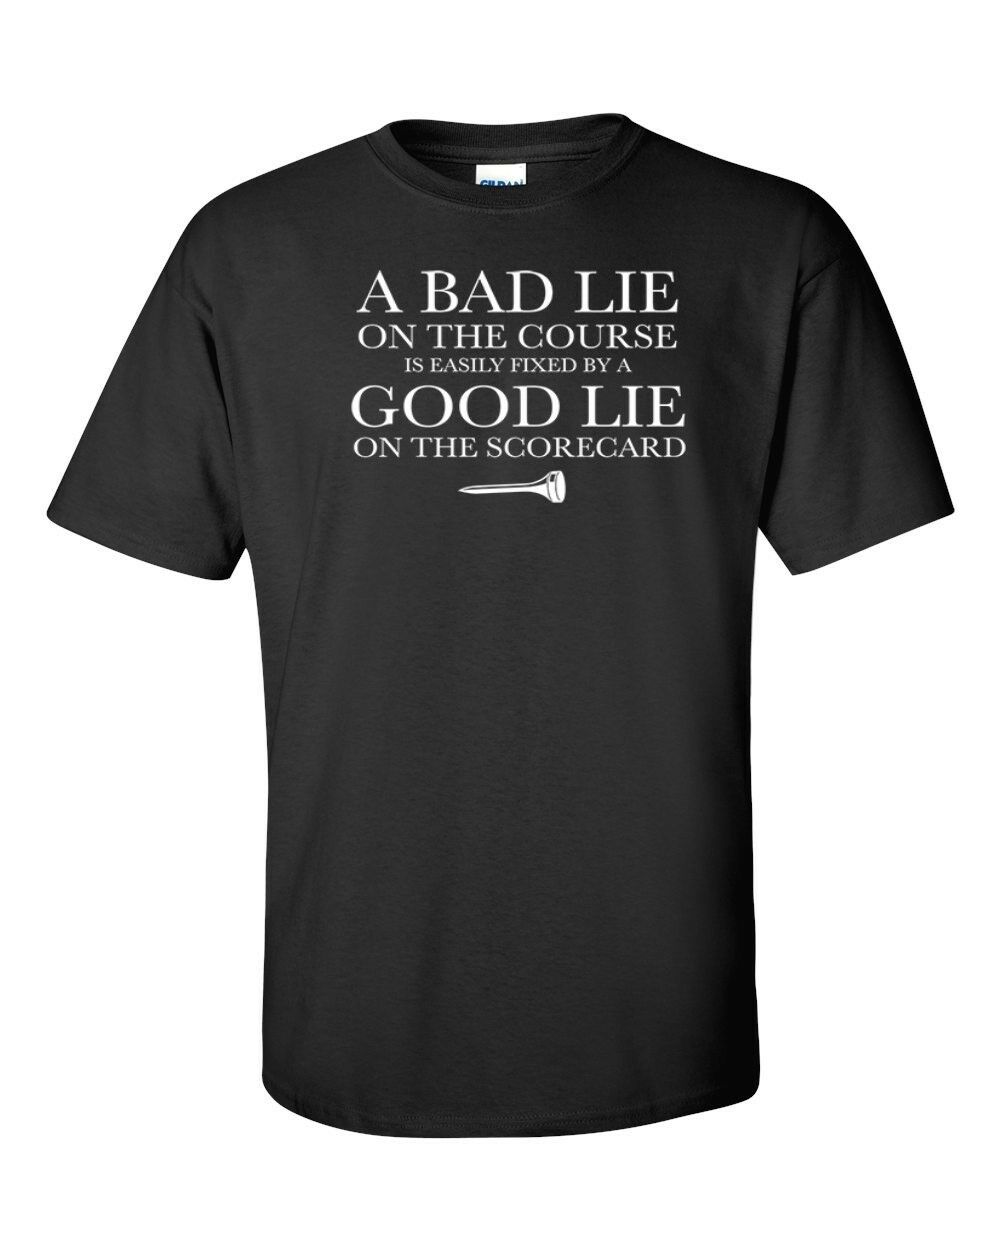 Funny T-Shirt A Bad Lie On The Course Is Easily Fixed By A Good Lie On The Score